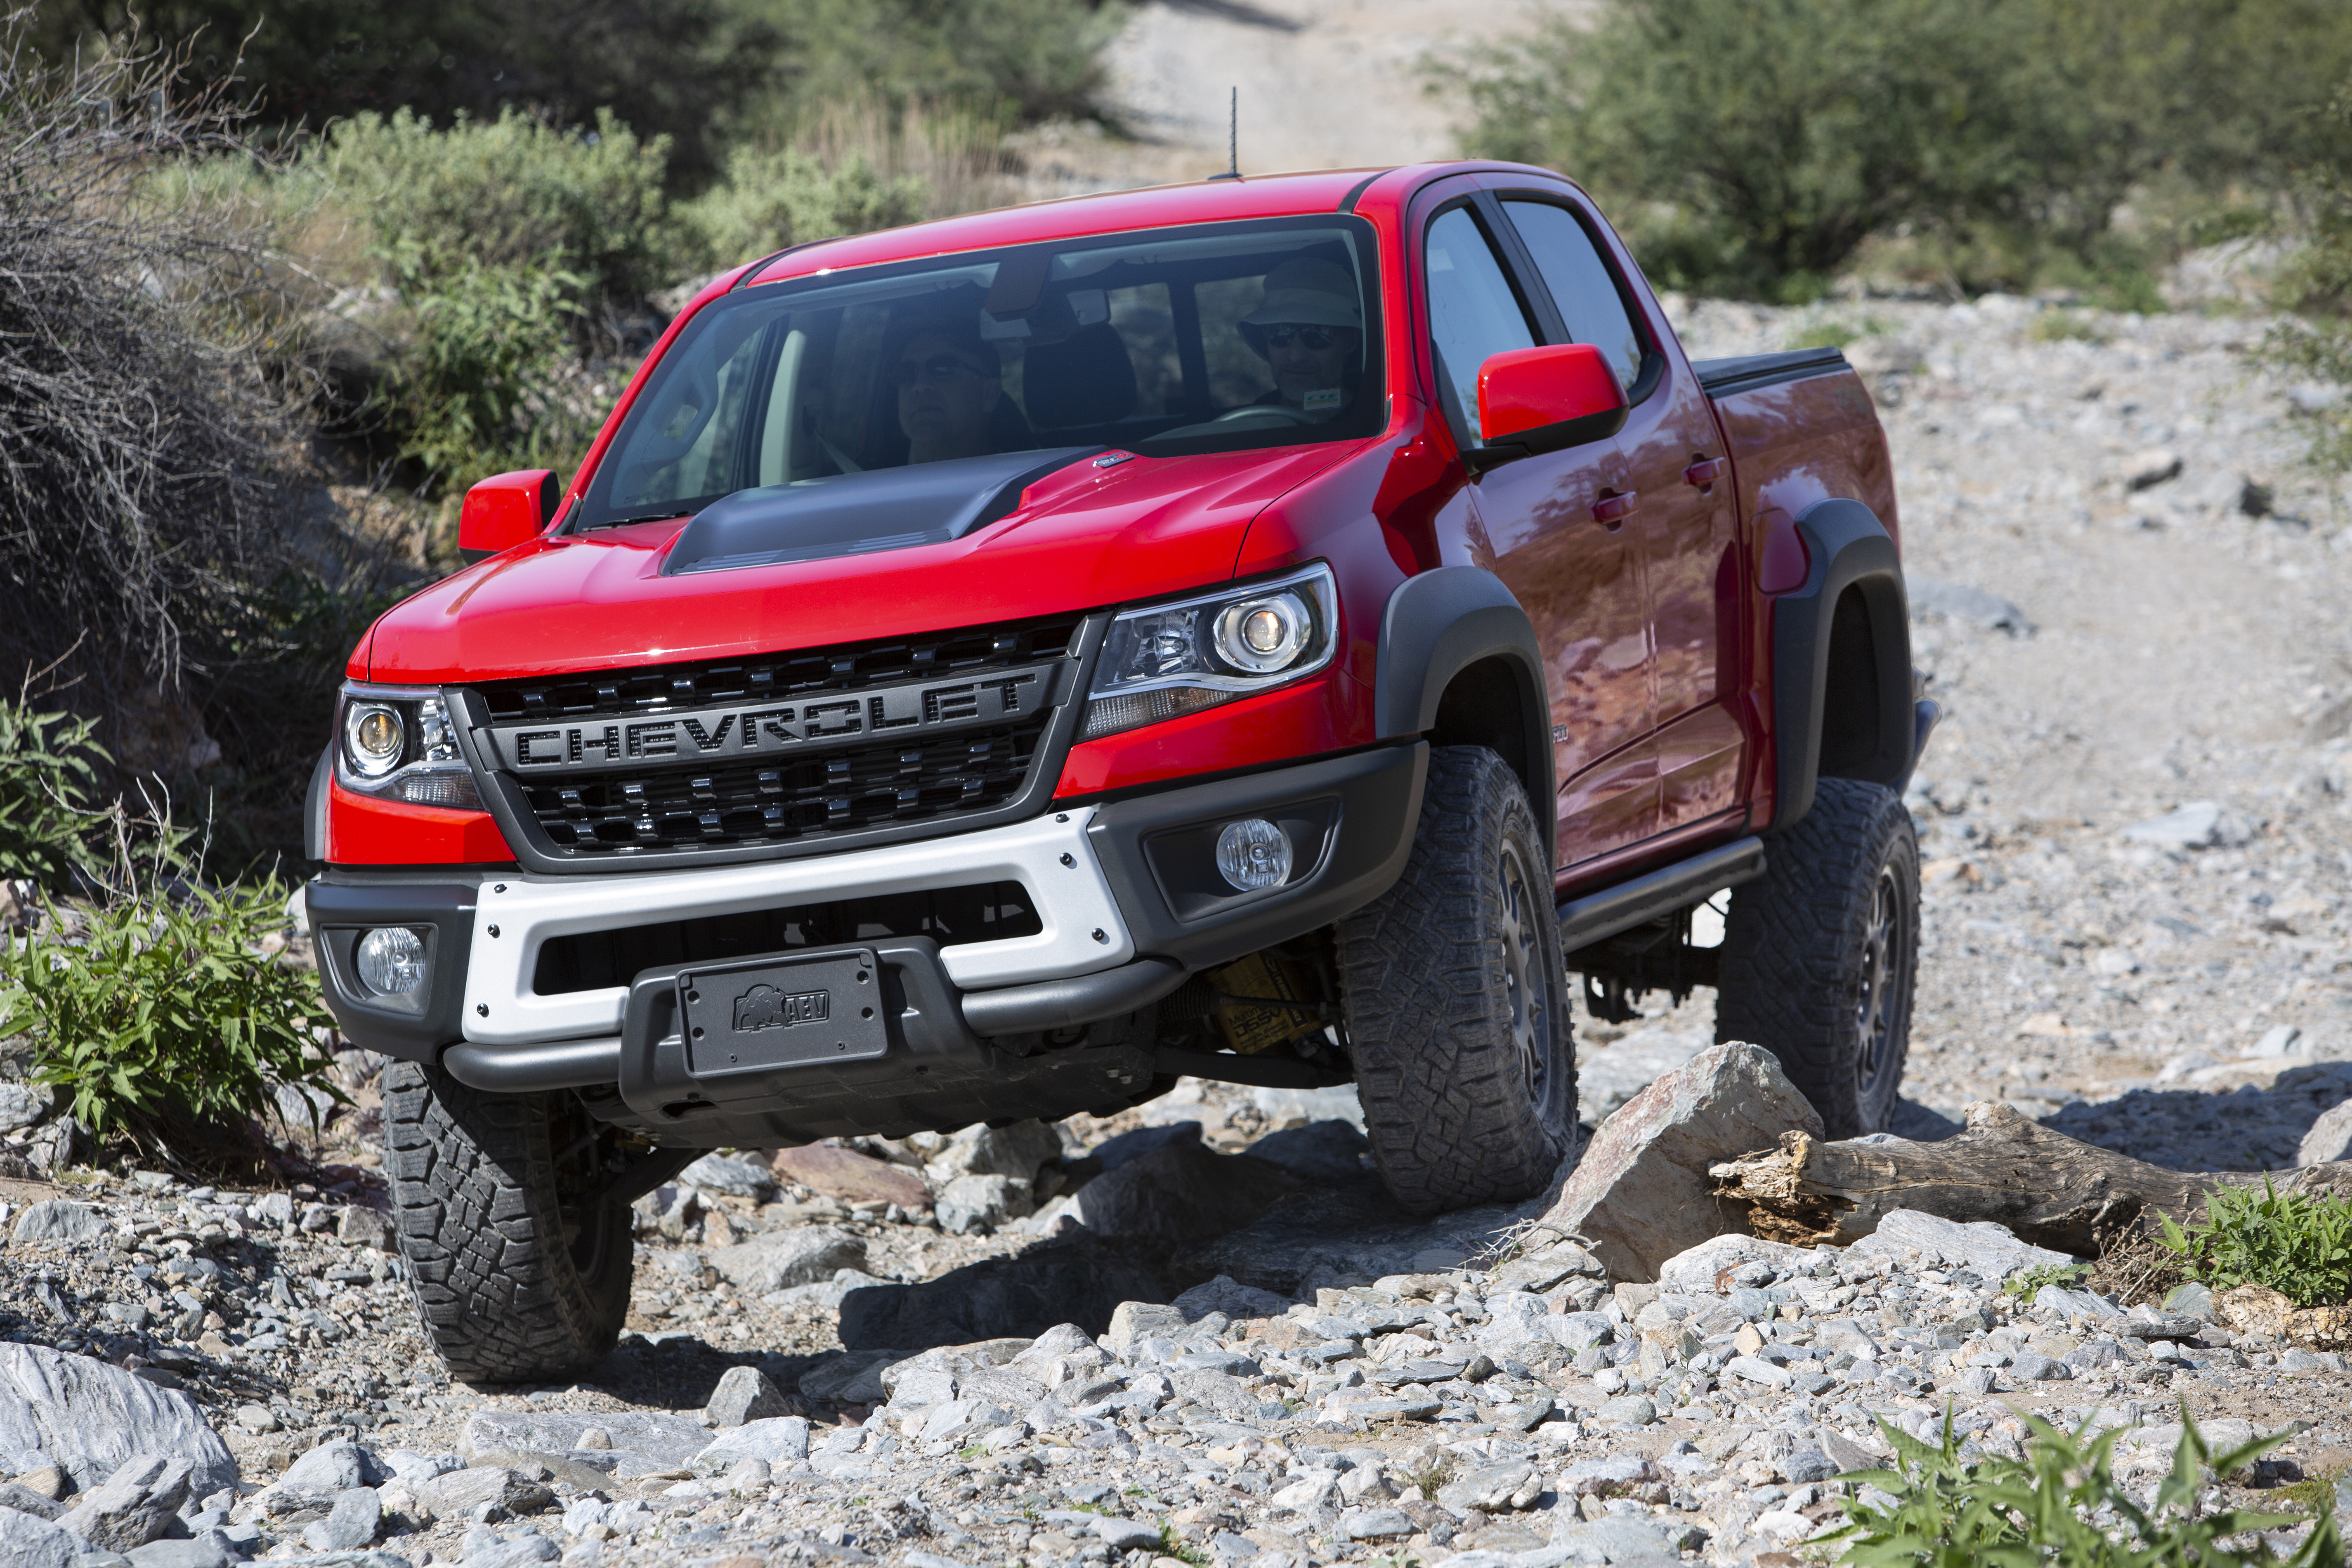 Chevrolet Colorado Zr2 Bison Named First Ever Overland Truck Of The Year